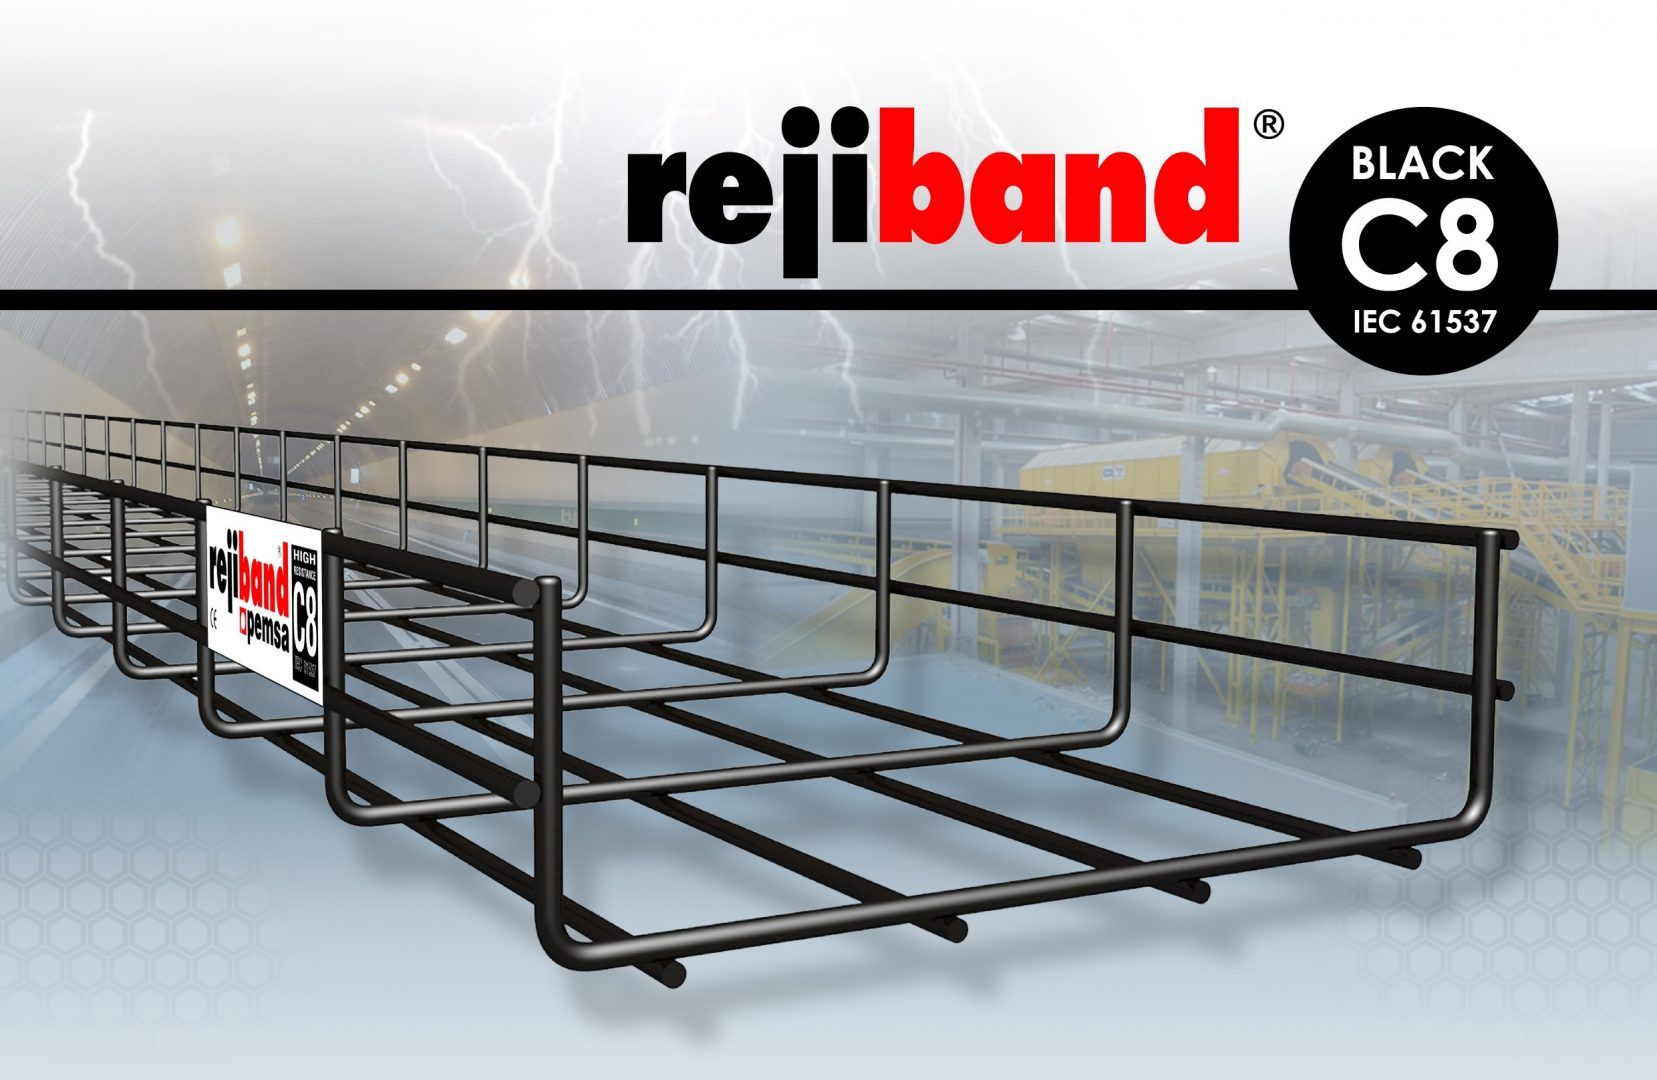 rejiband® BLACK C8  HIGH RESISTANCE PROTECTION FOR AGGRESSIVE ENVIRONMENTS.